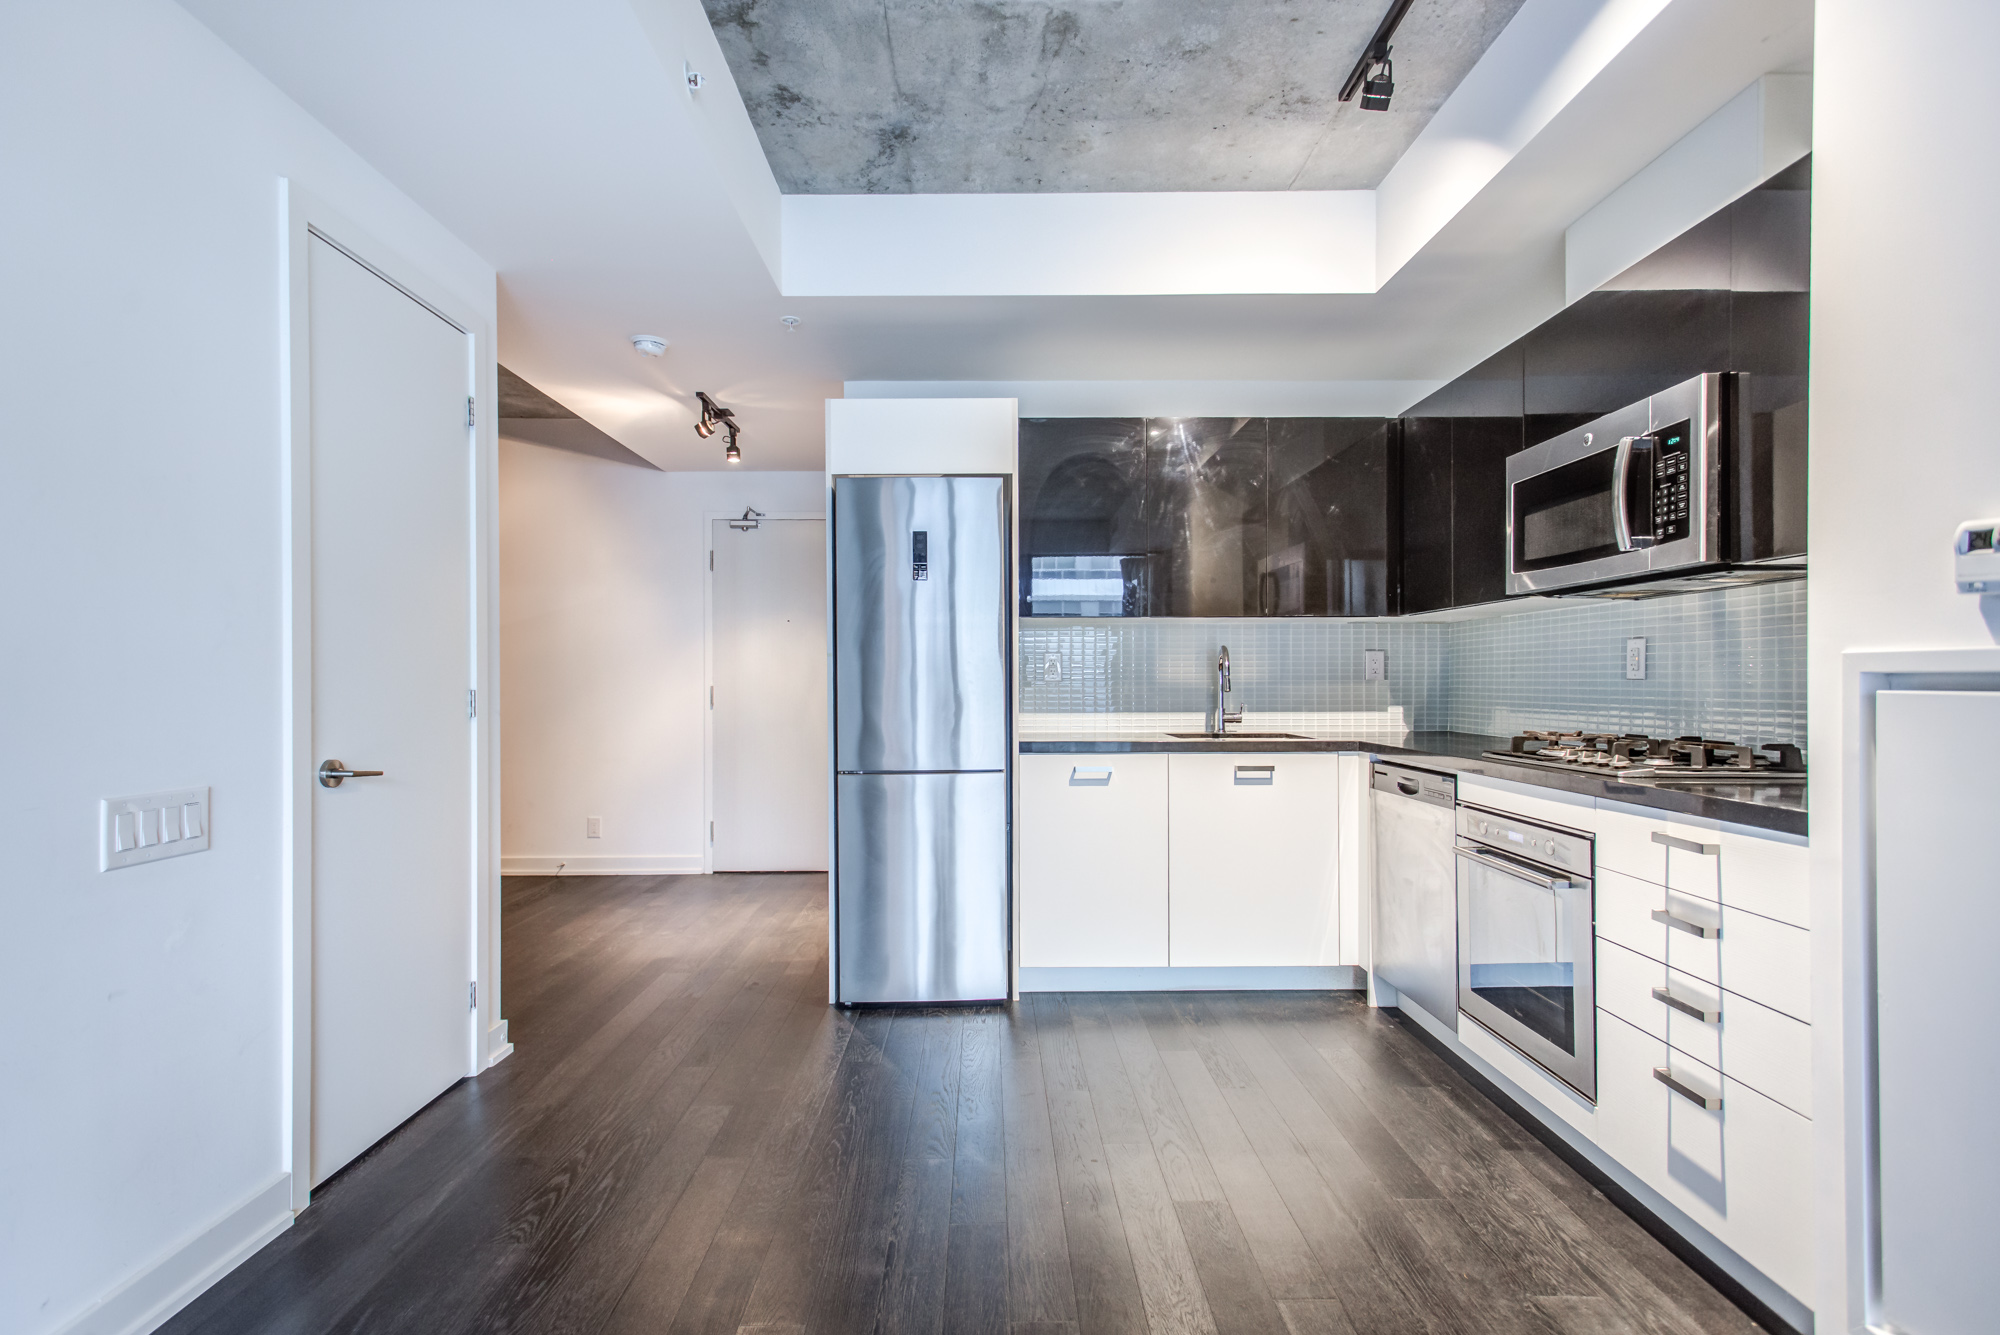 L-shaped kitchen with modern appliances at 39 Brant St Unit 918, Brant Park Lofts, in Queen West.